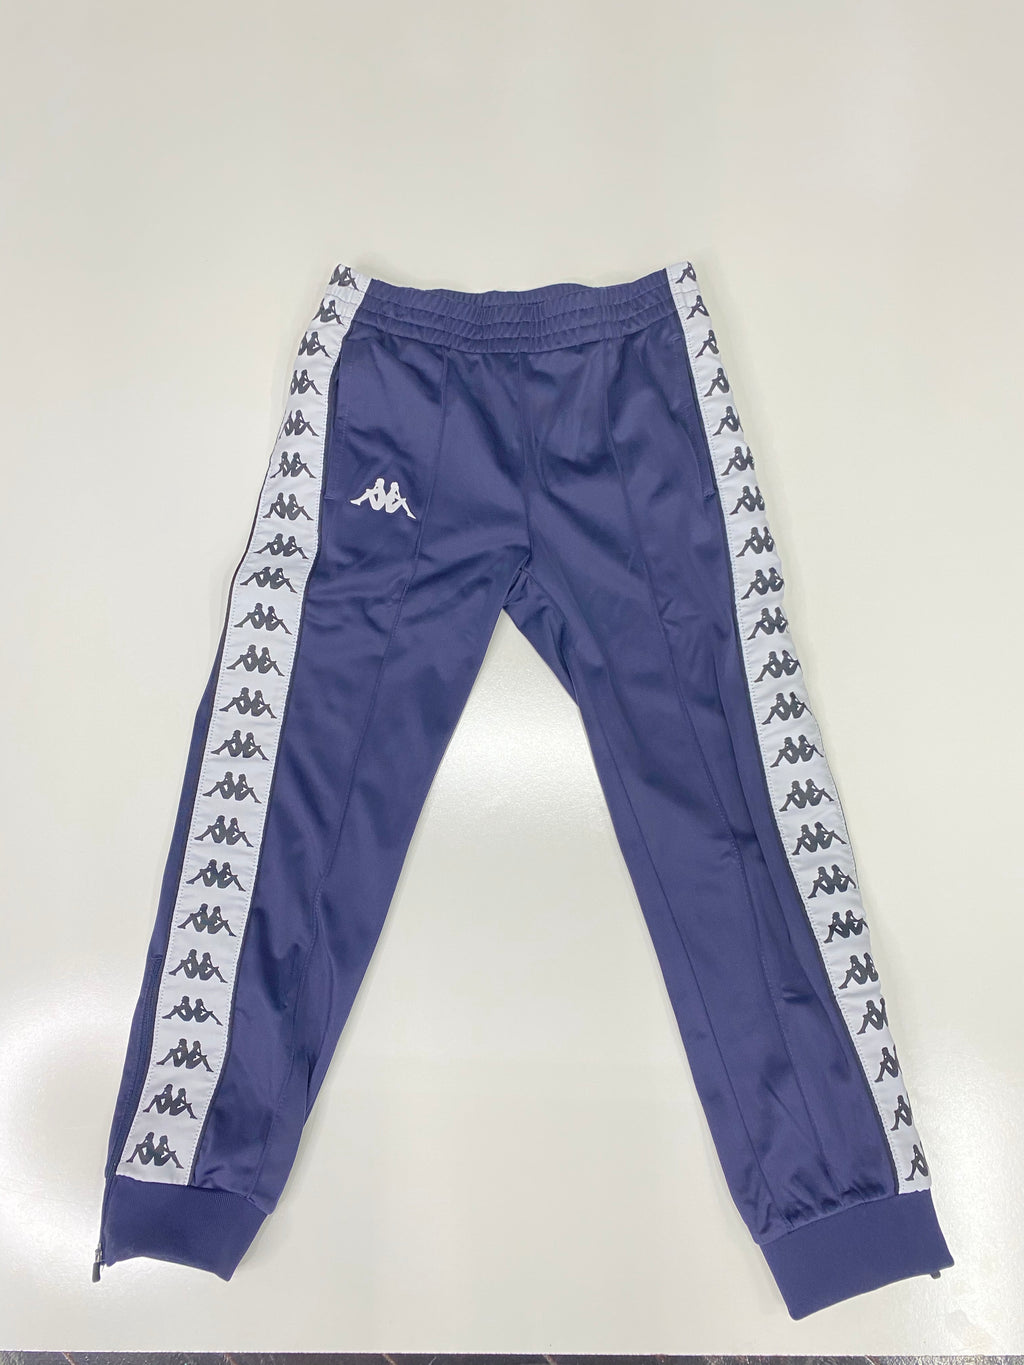 Kappa 222 Banda Anniston Navy Blue Track Pants